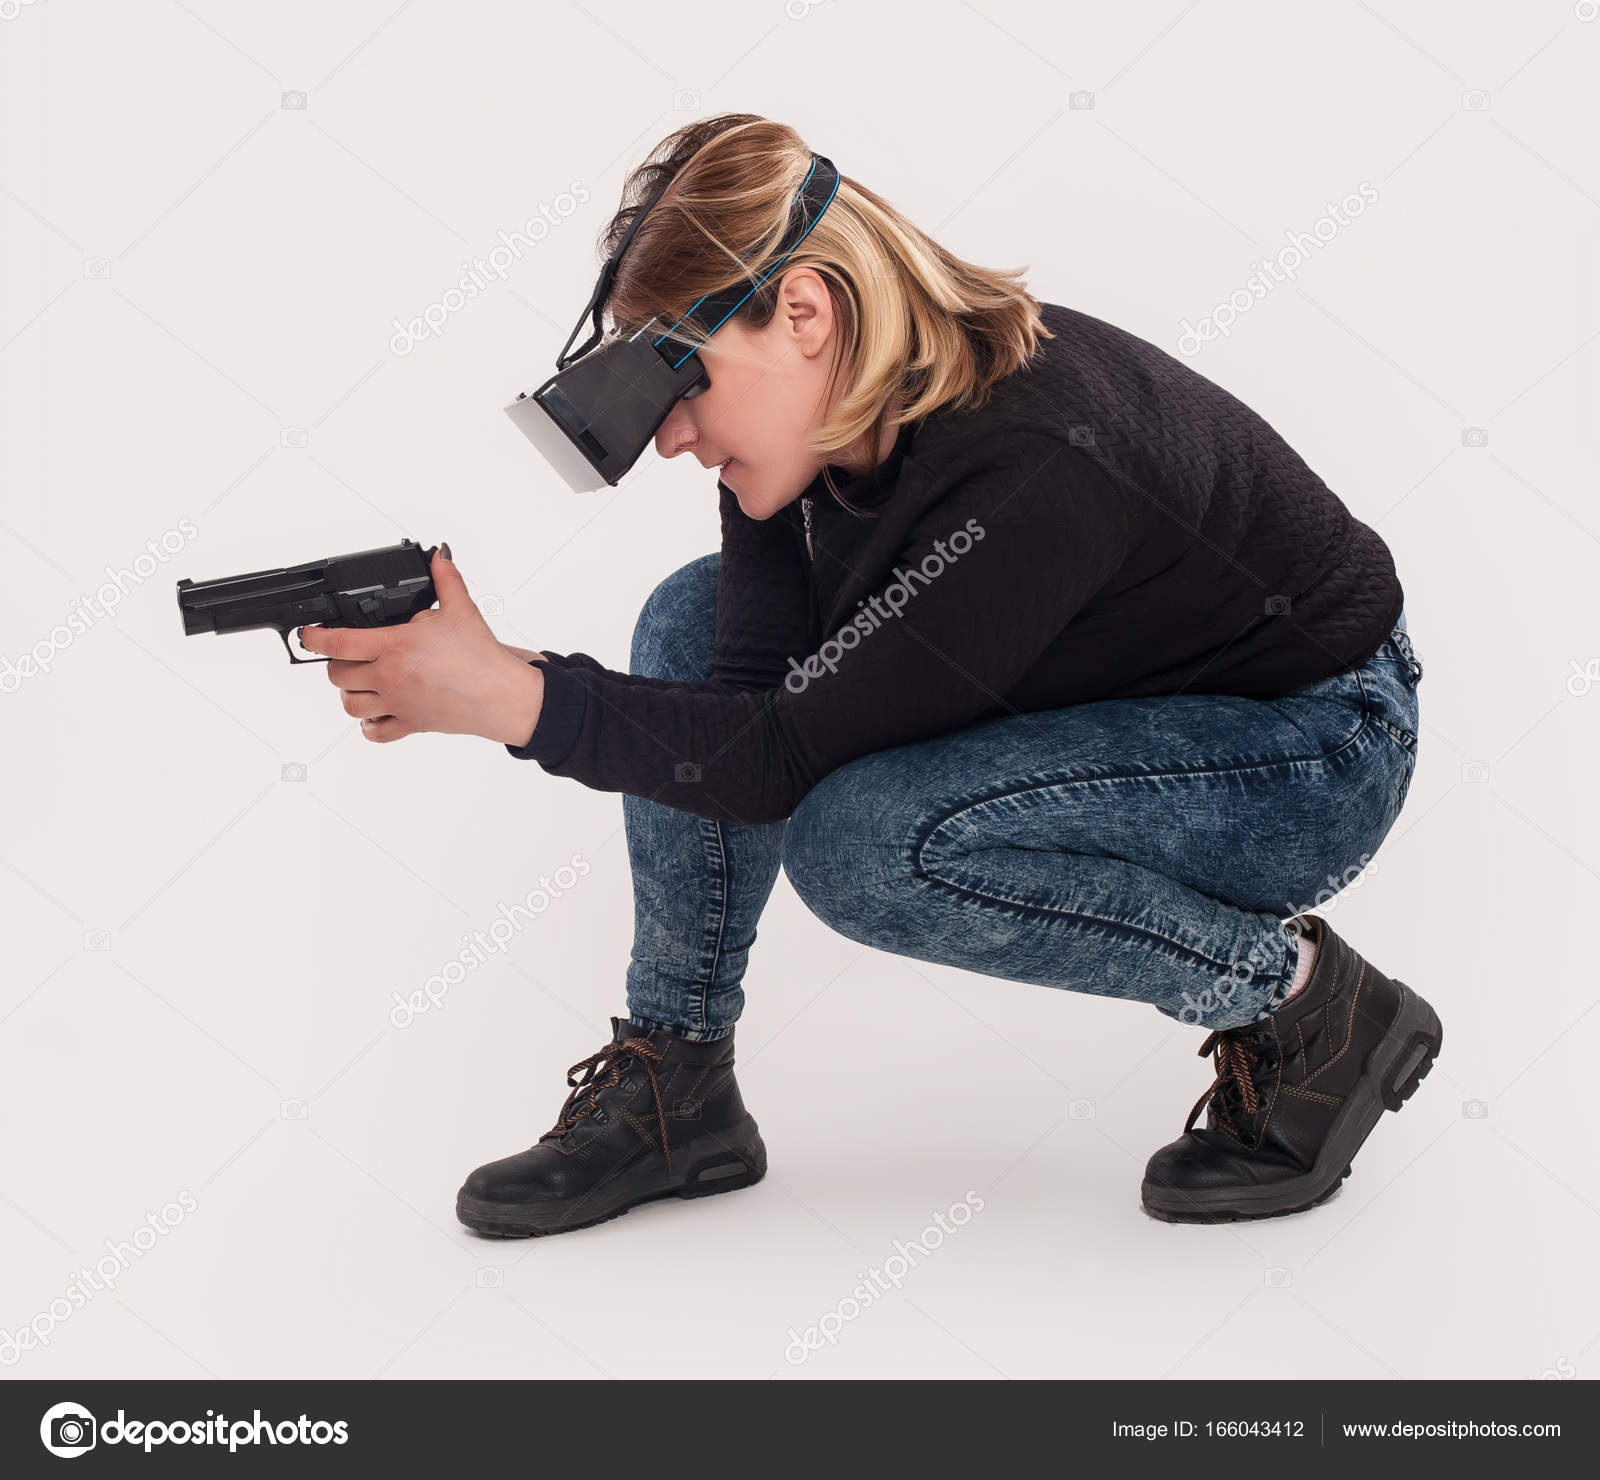 Woman play VR shooter game with vr glasses and gun — Stock Photo